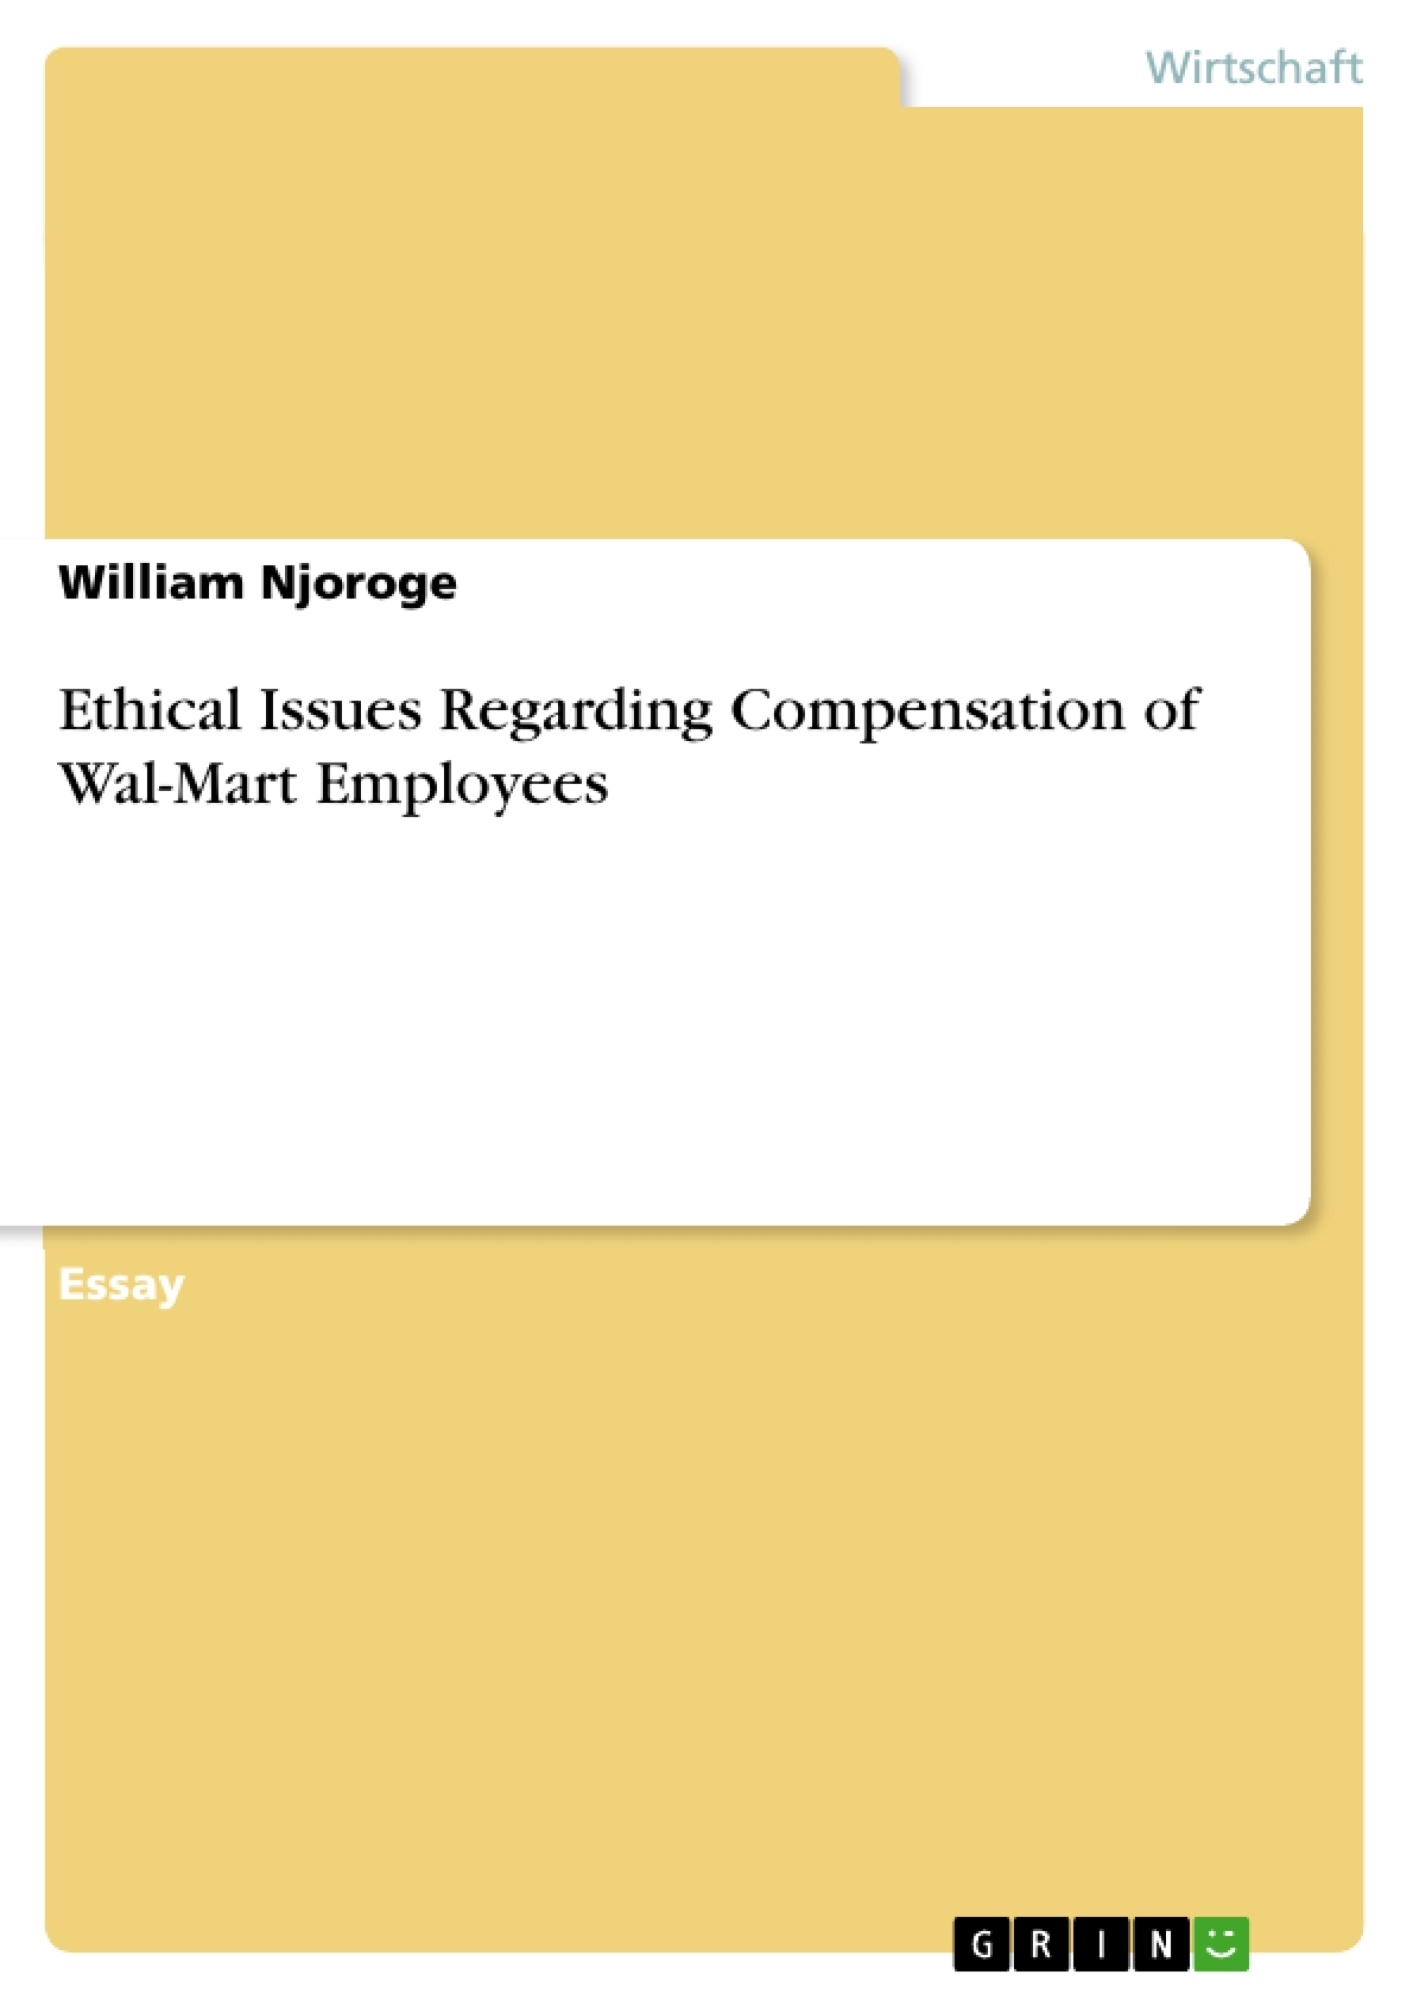 Titel: Ethical Issues Regarding Compensation of Wal-Mart Employees